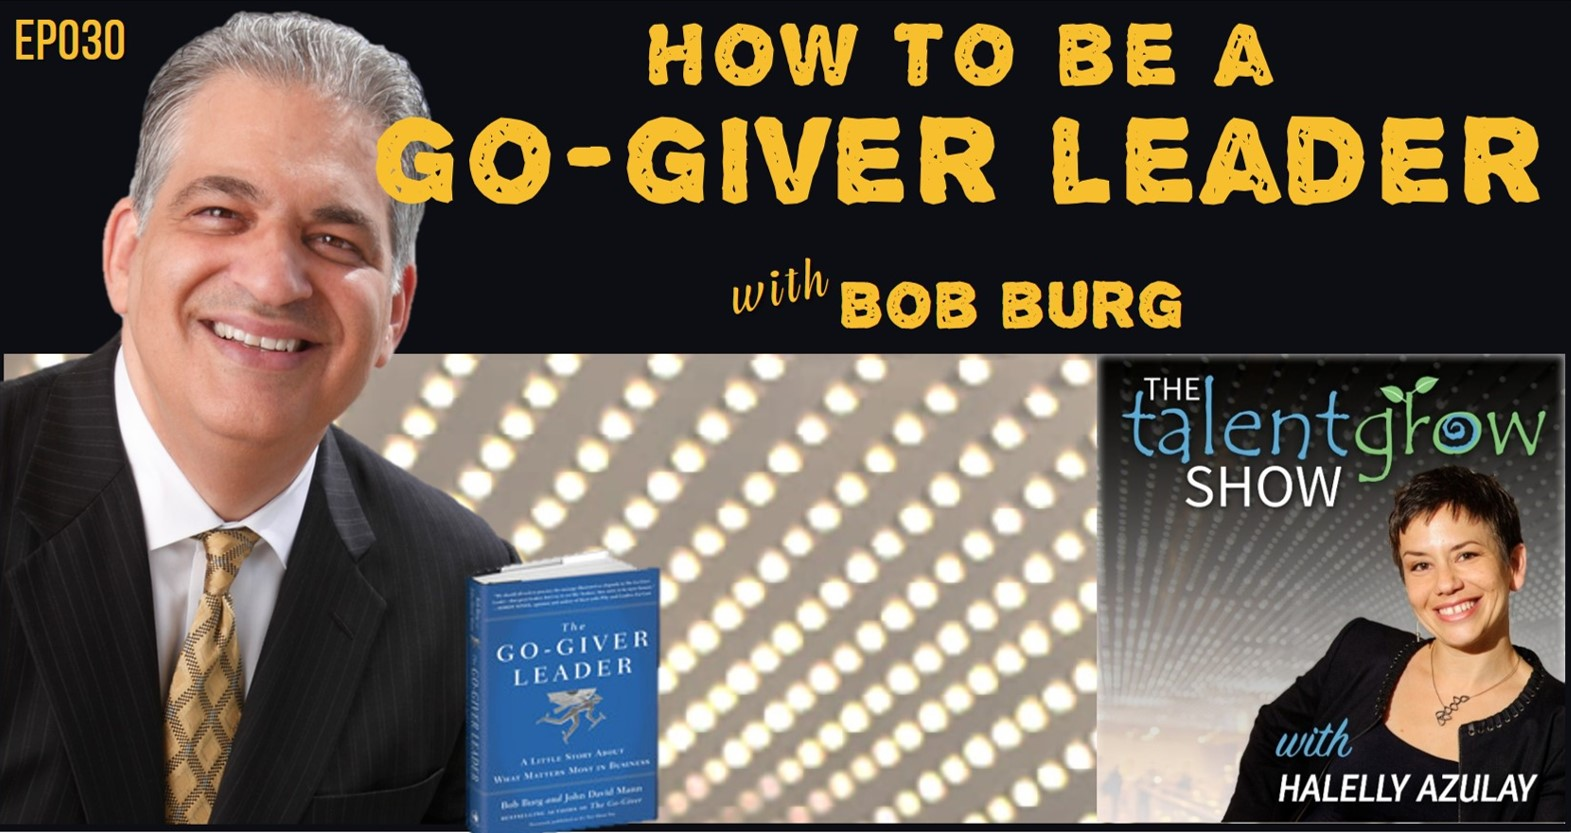 TalentGrow Show episode 30 How to be a Go-Giver Leader with Bob Burg Host Halelly Azulay